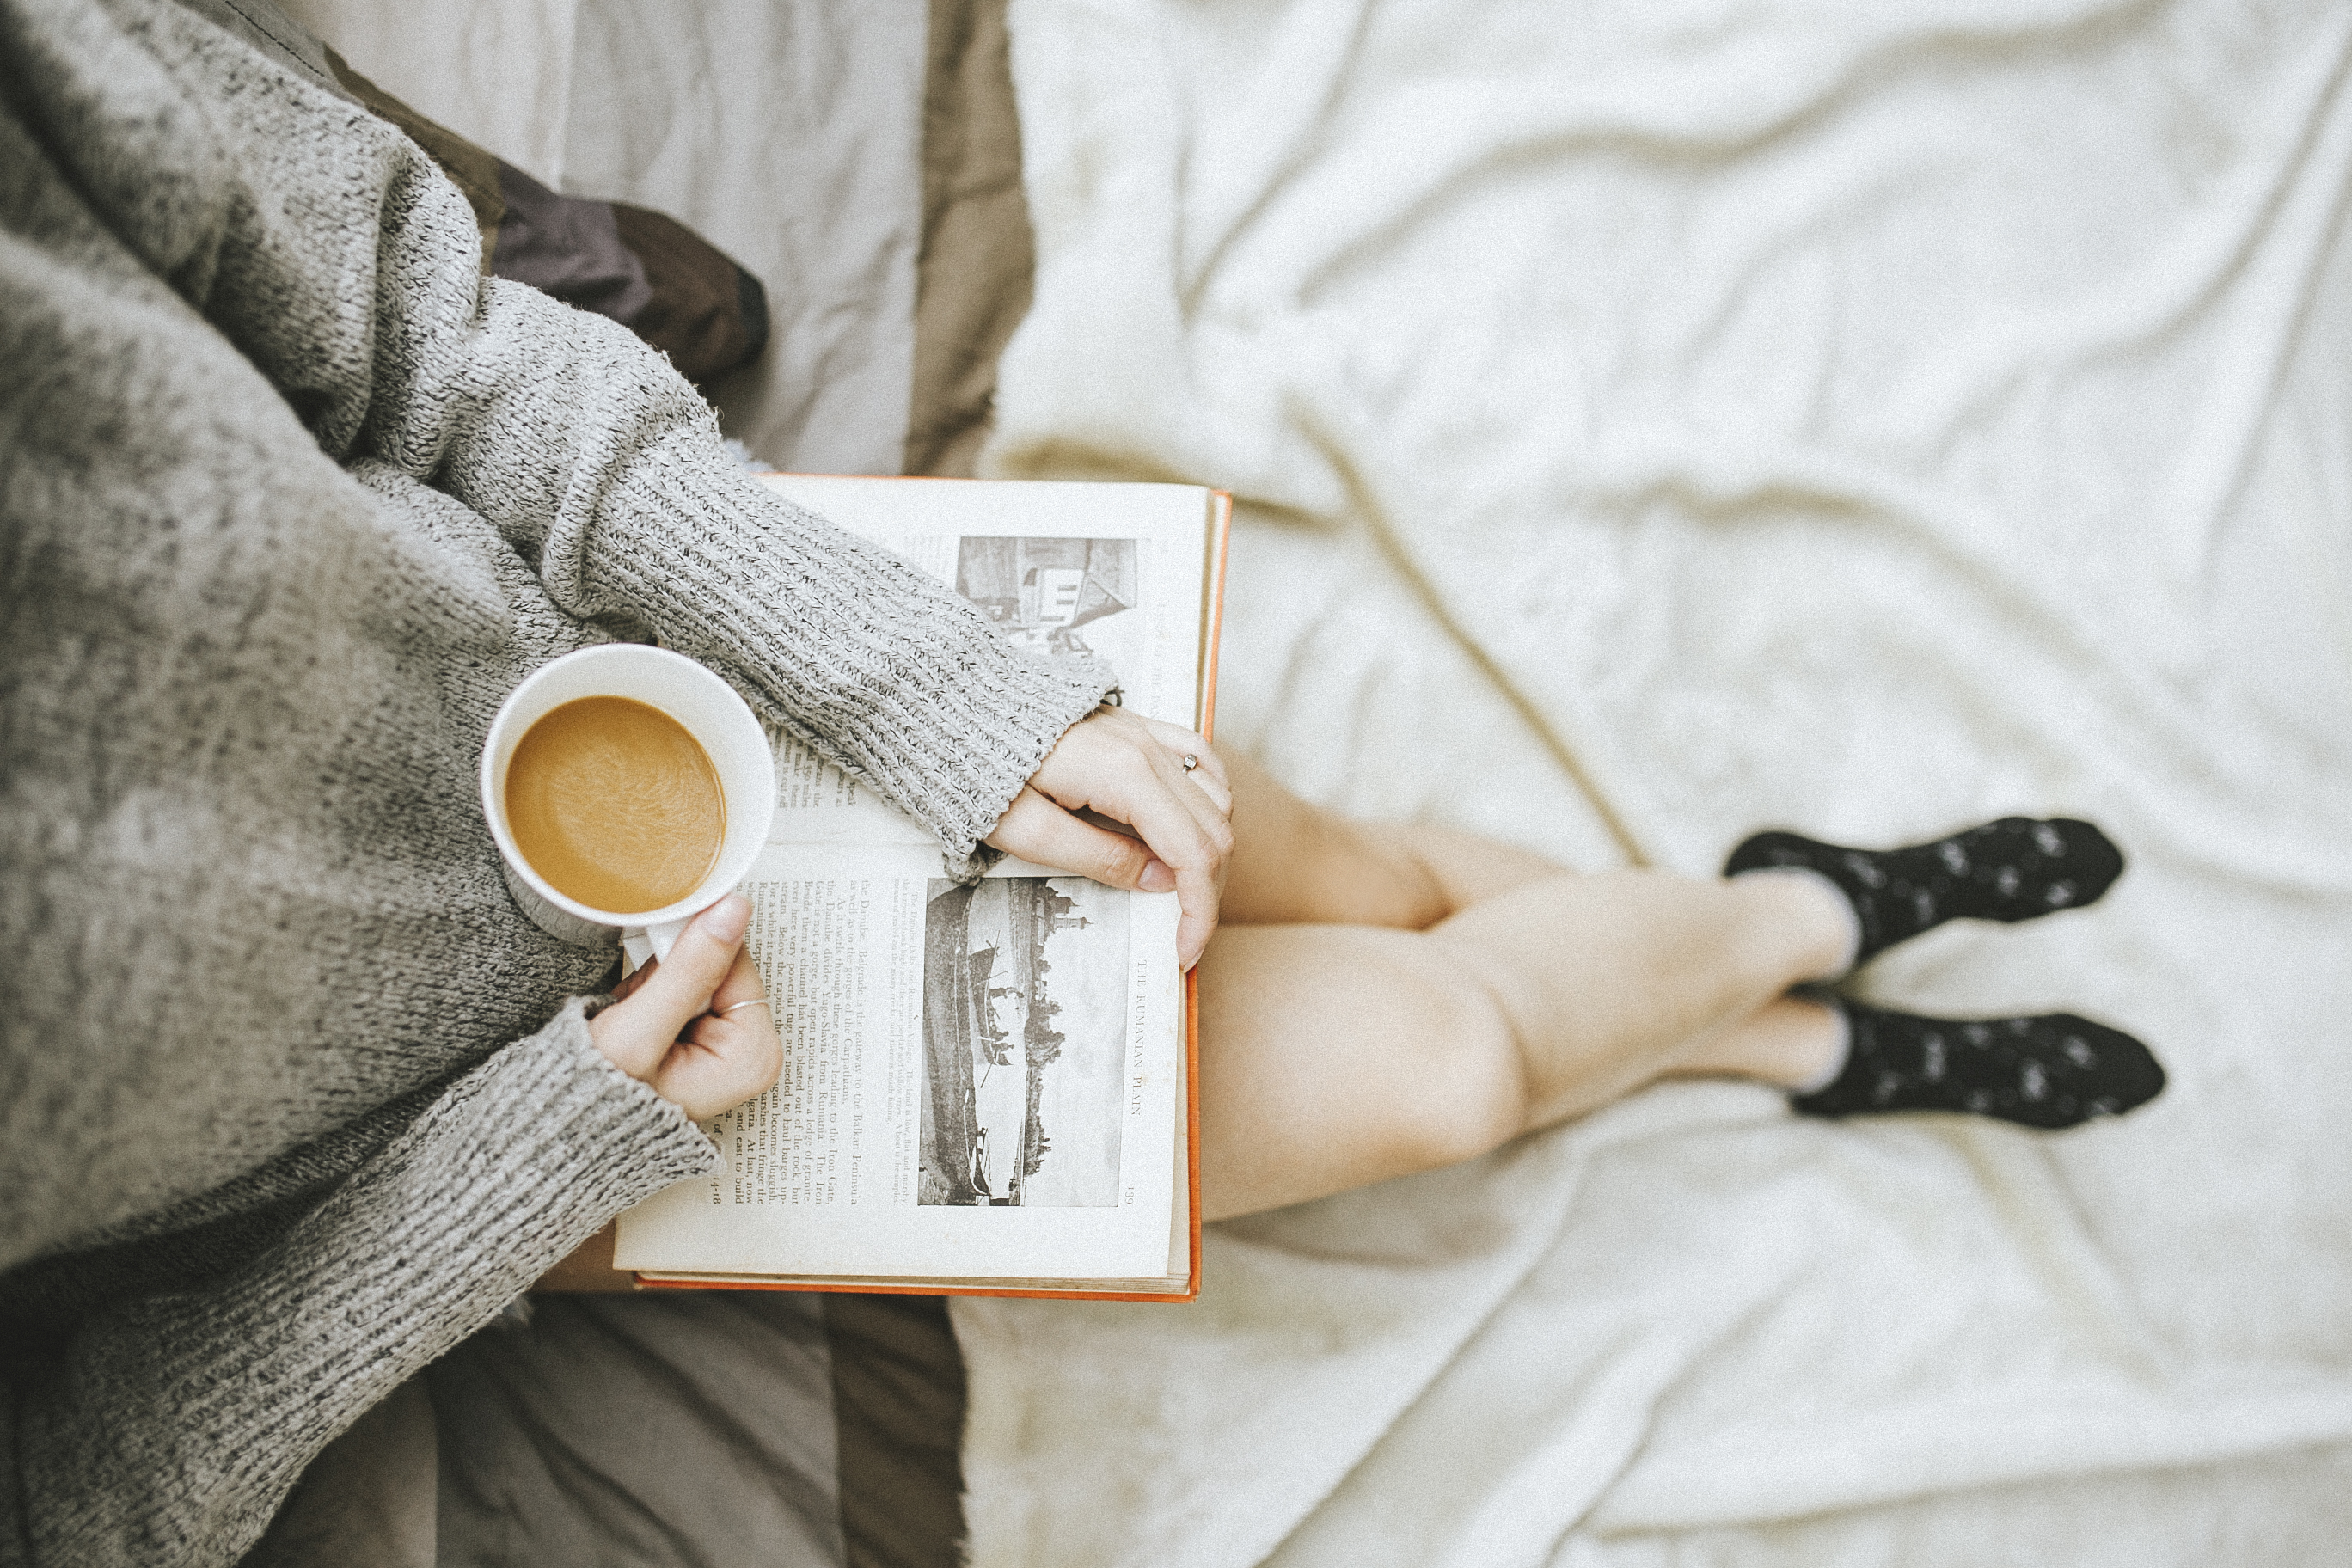 Image of a girl holding a cup of coffee with a book on her lap